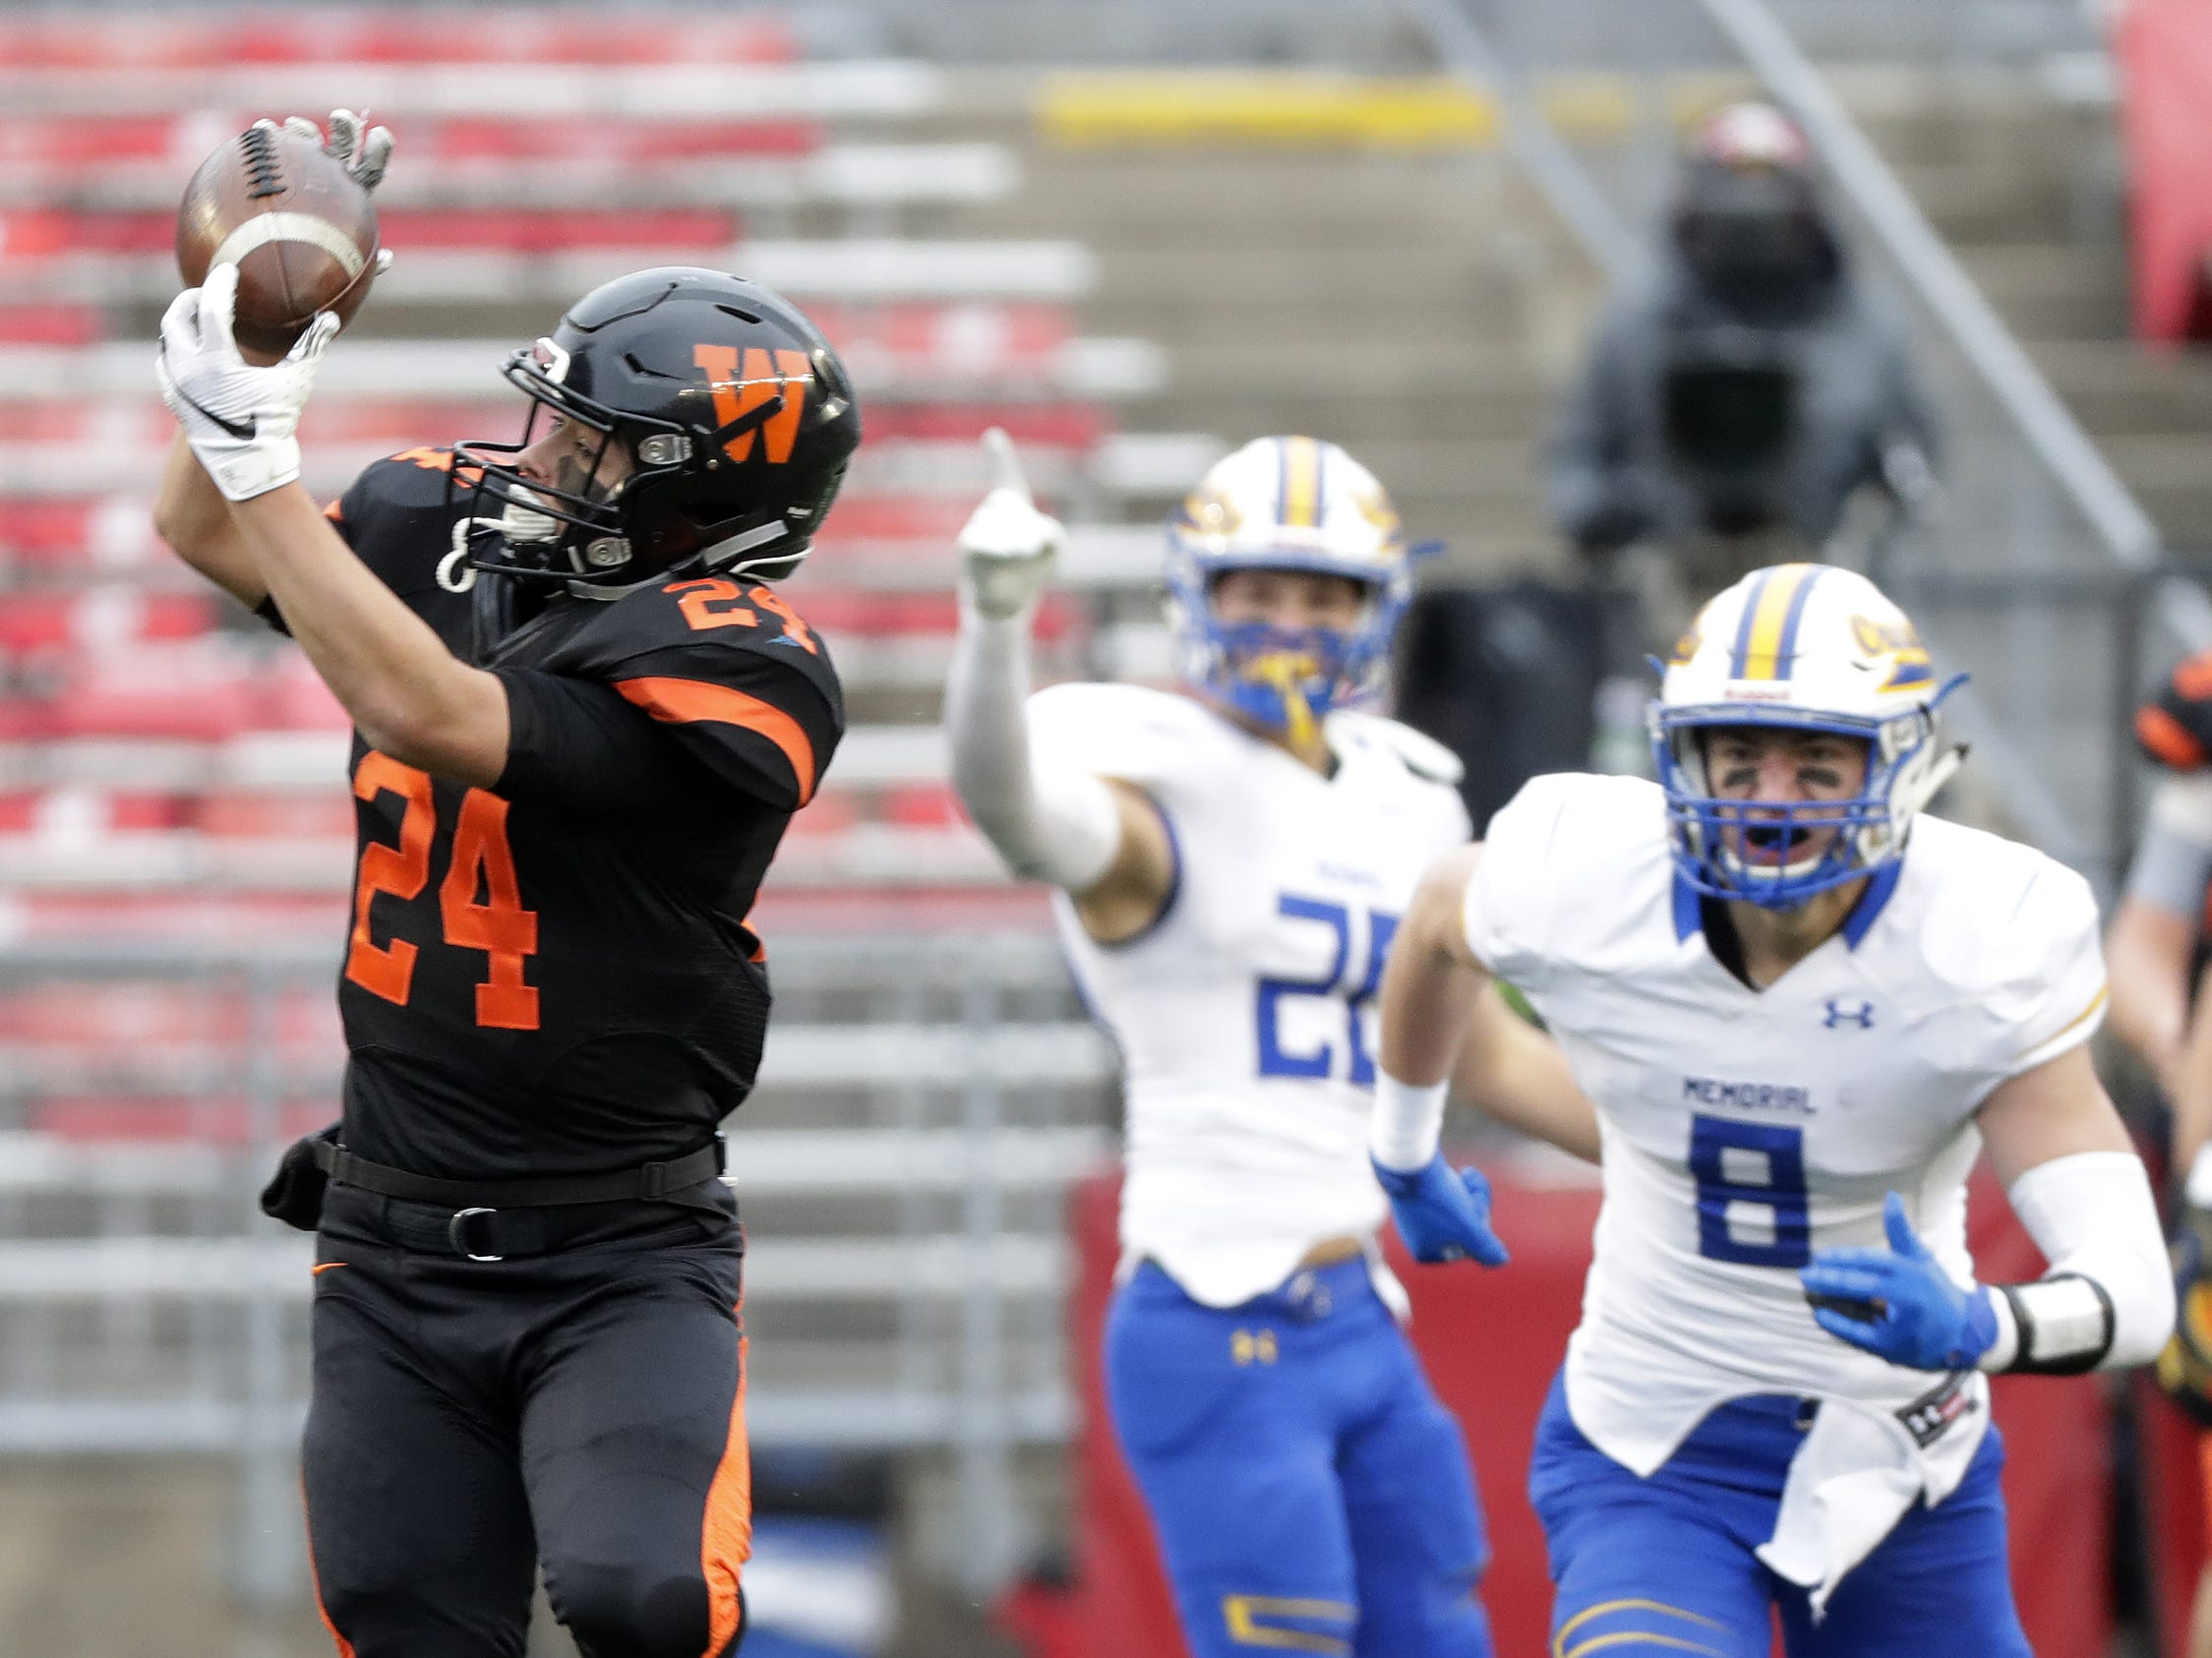 West De Pere's Sam Mommaerts (24) makes a catch against Catholic Memorial in the WIAA Division 3 championship game at Camp Randall Stadium on Friday, November 16, 2018 in Madison, Wis.